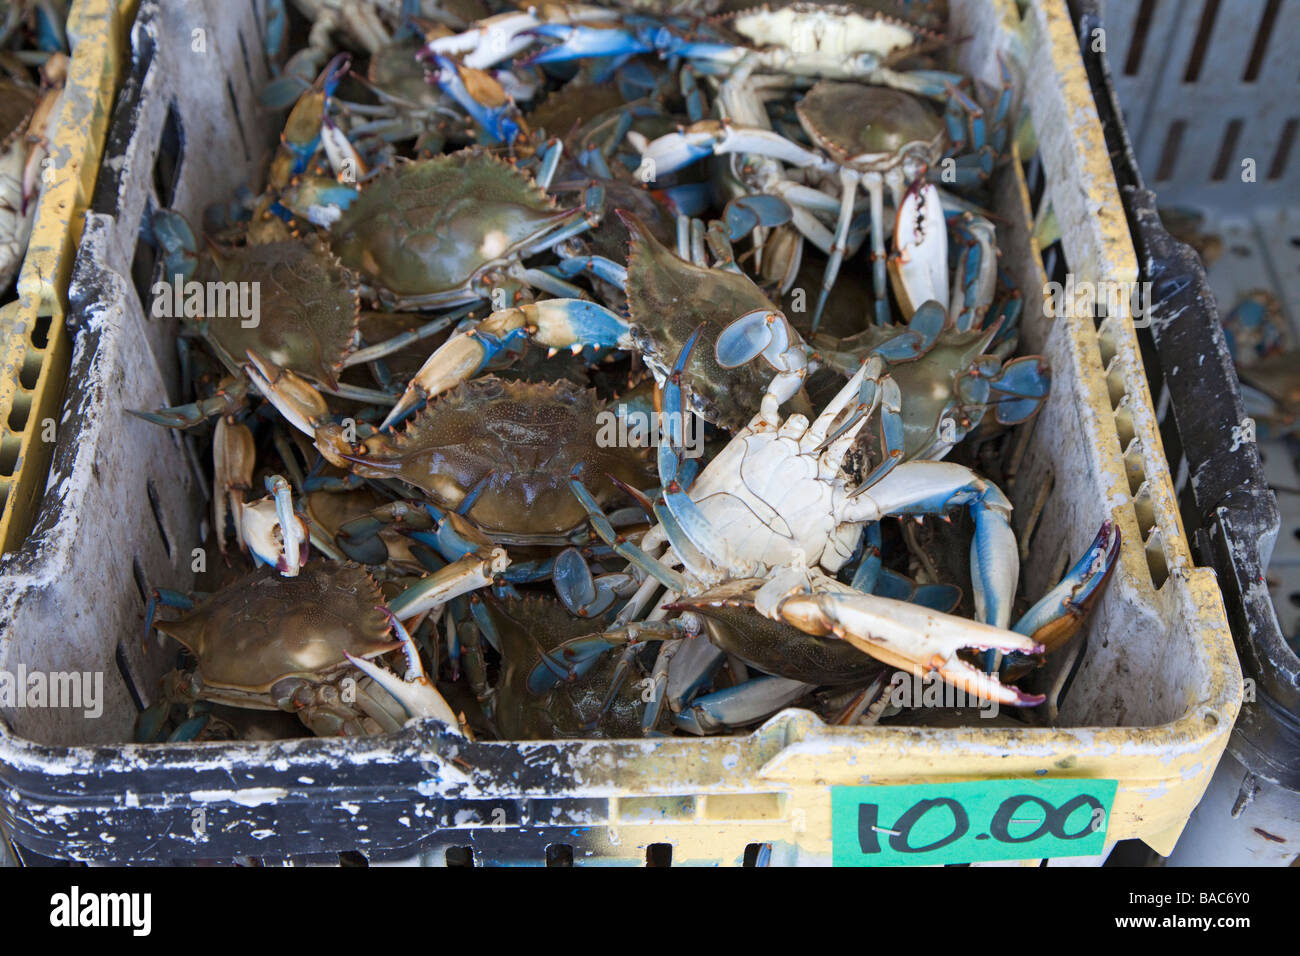 Westwego Louisiana Blue crabs on sale at a roadside seafood market - Stock Image